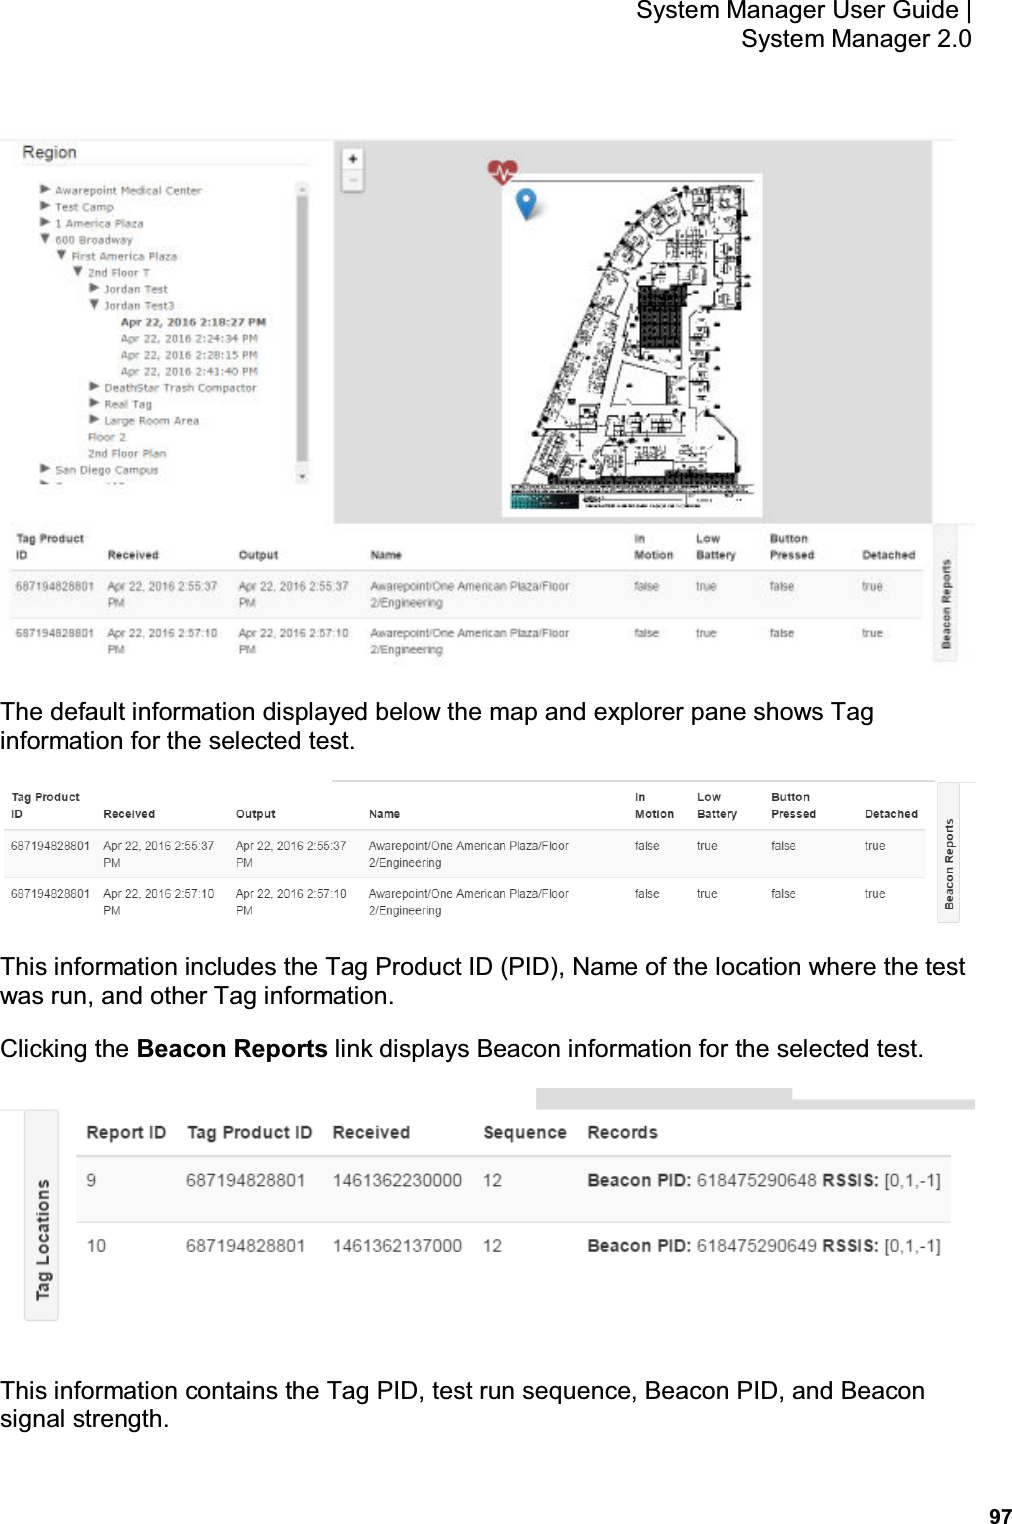 97 System Manager User Guide    System Manager 2.0  The default information displayed below the map and explorer pane shows Tag information for the selected test.  This information includes the Tag Product ID (PID), Name of the location where the test was run, and other Tag information. Clicking the Beacon Reports link displays Beacon information for the selected test.  This information contains the Tag PID, test run sequence, Beacon PID, and Beacon signal strength.